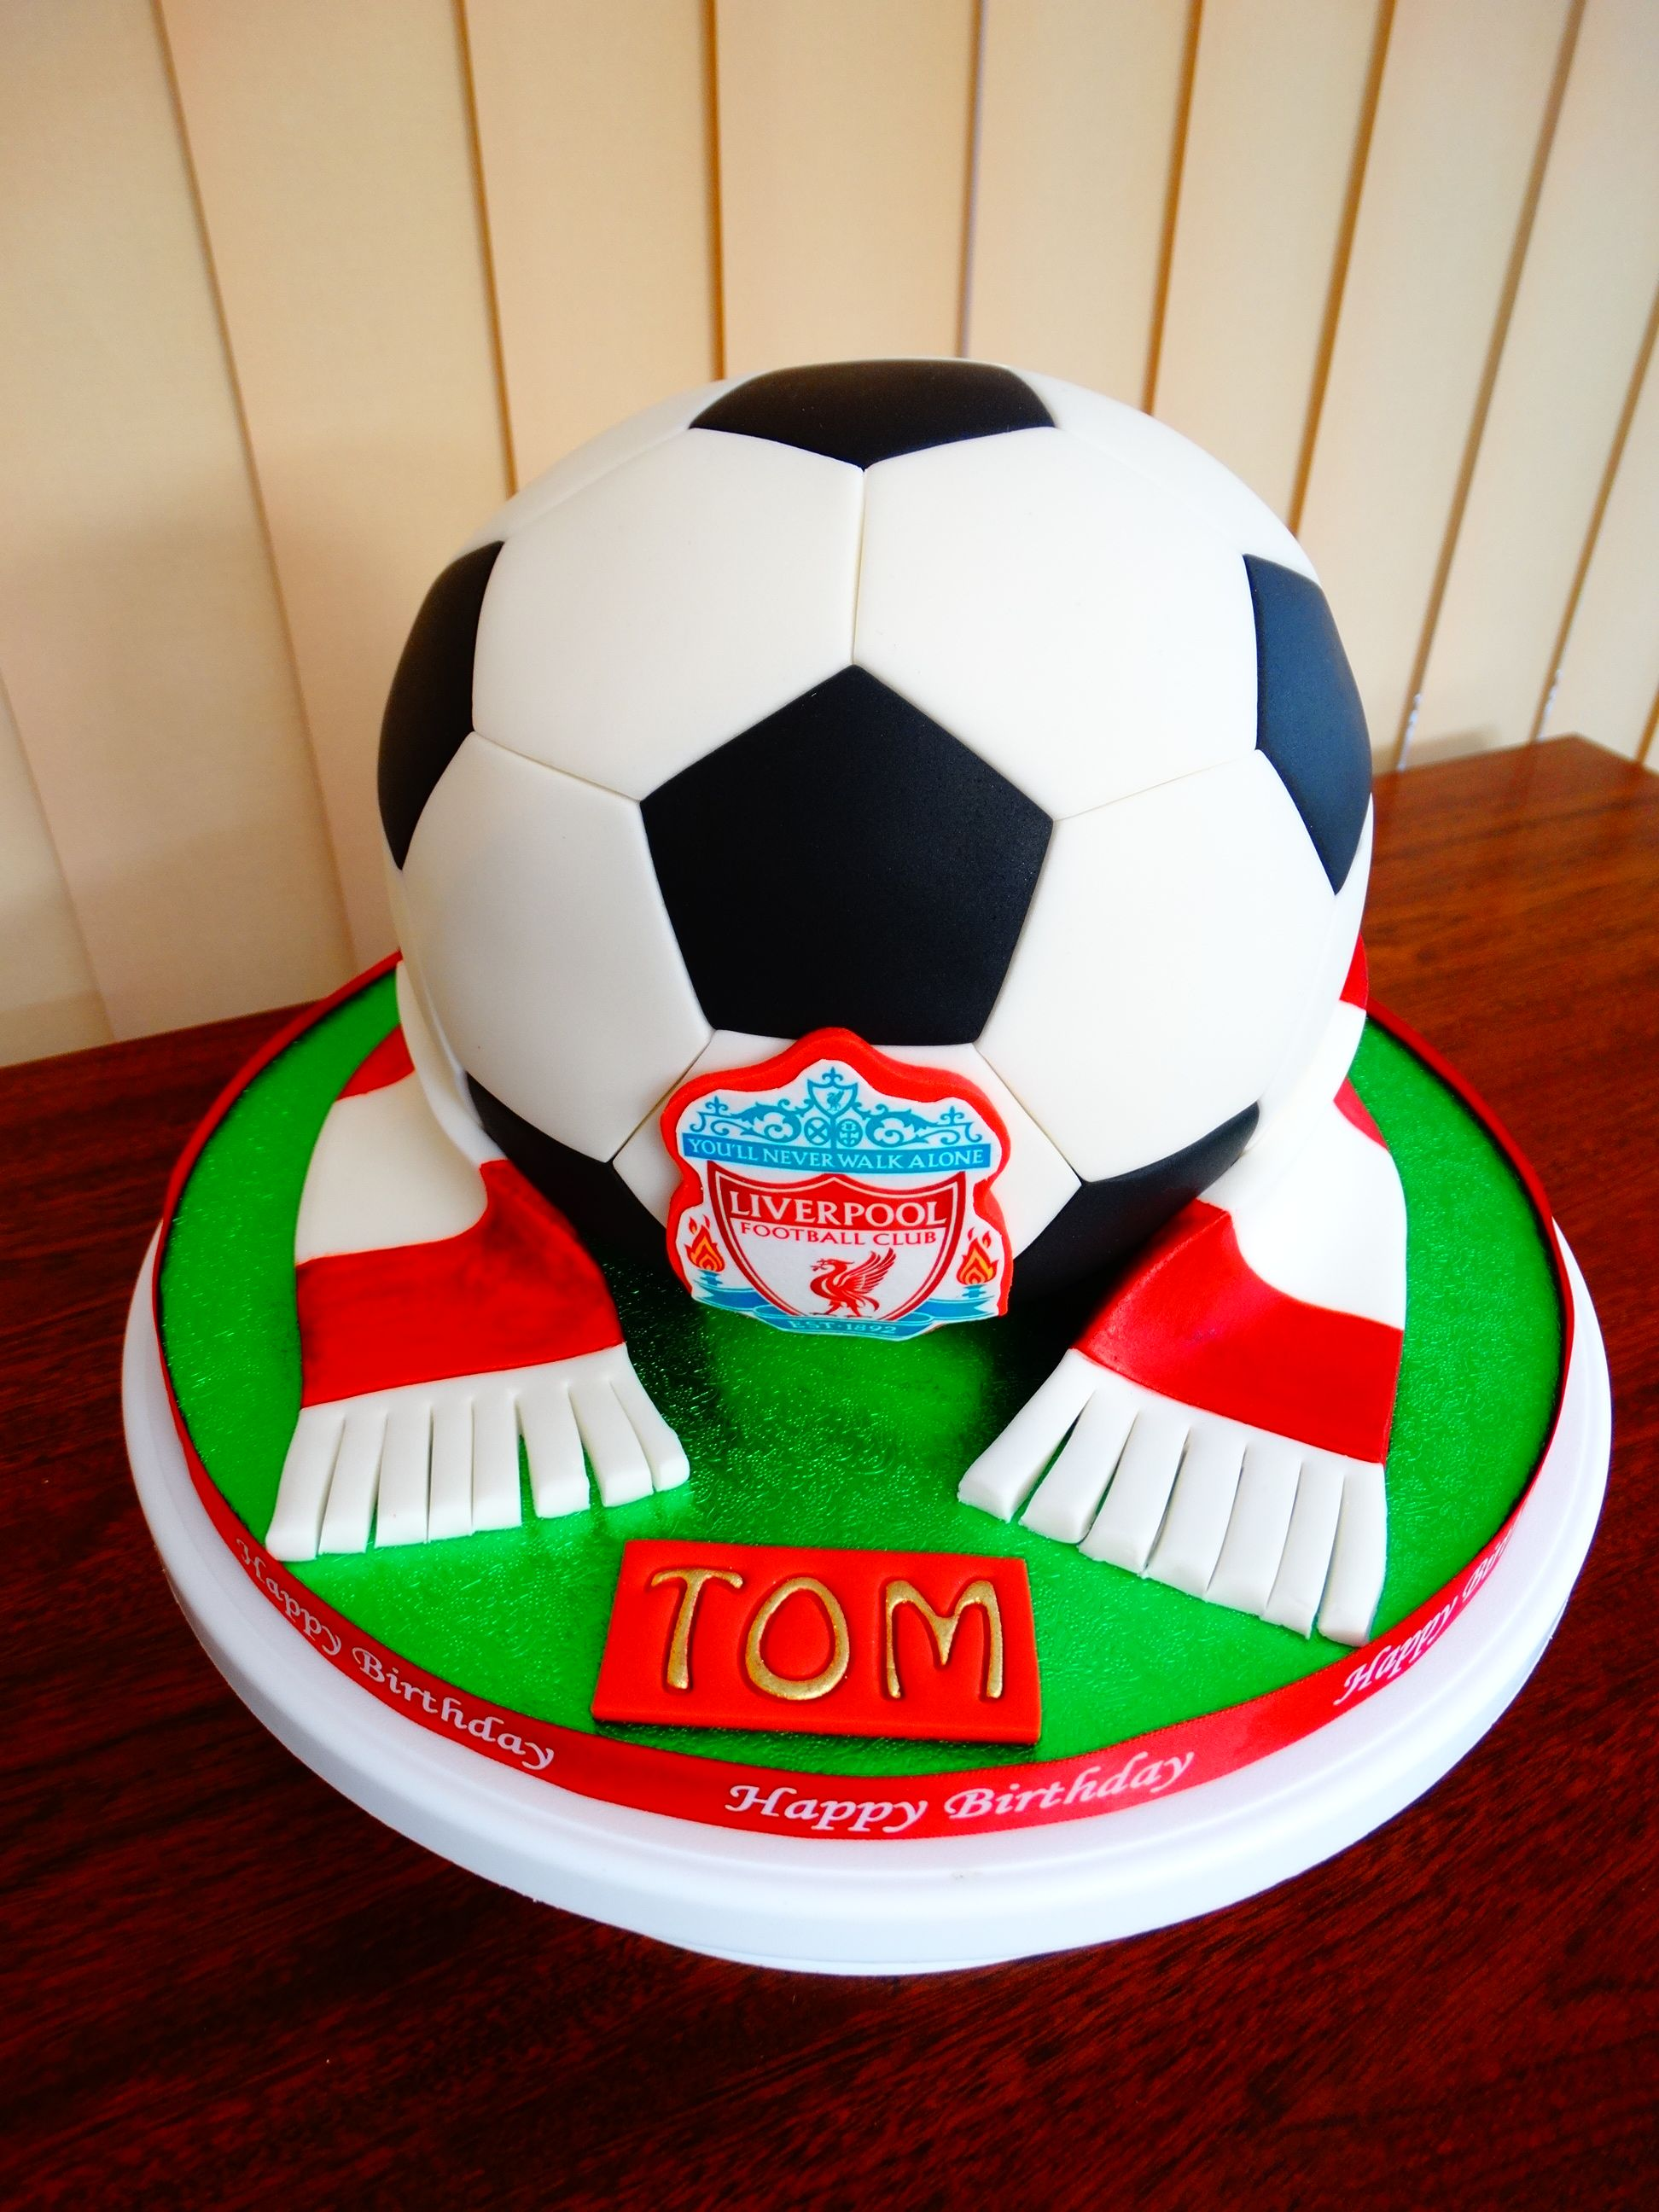 Liverpool Theme Football Cake Xmcx Soccer Birthday Parties Birthday Cake Pops Football Cake